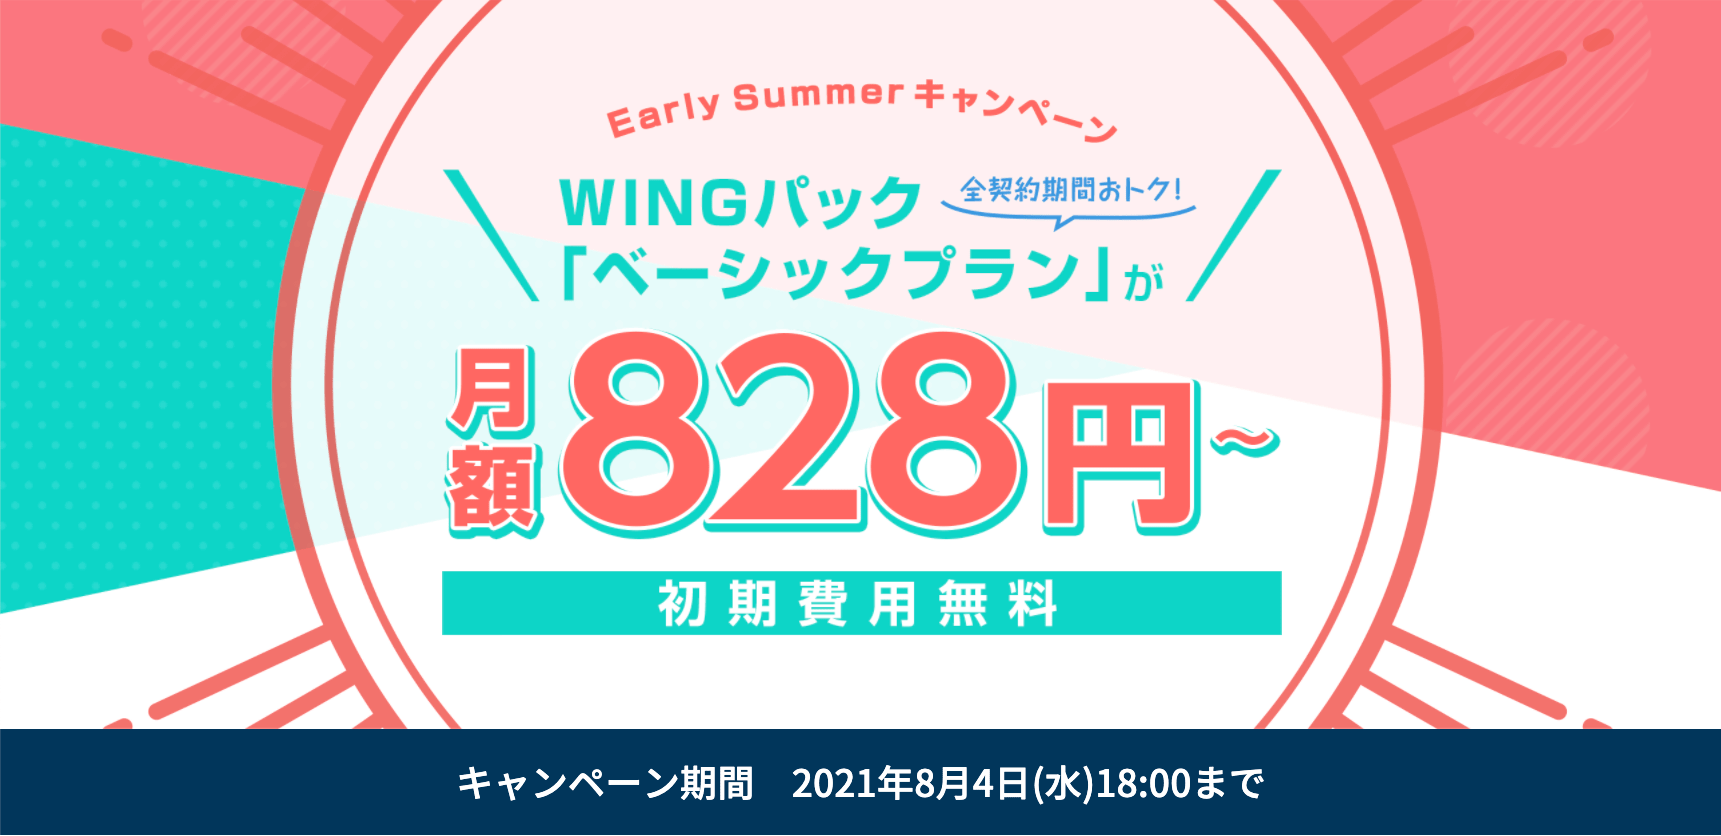 ConoHa WING Early Summer キャンペーン